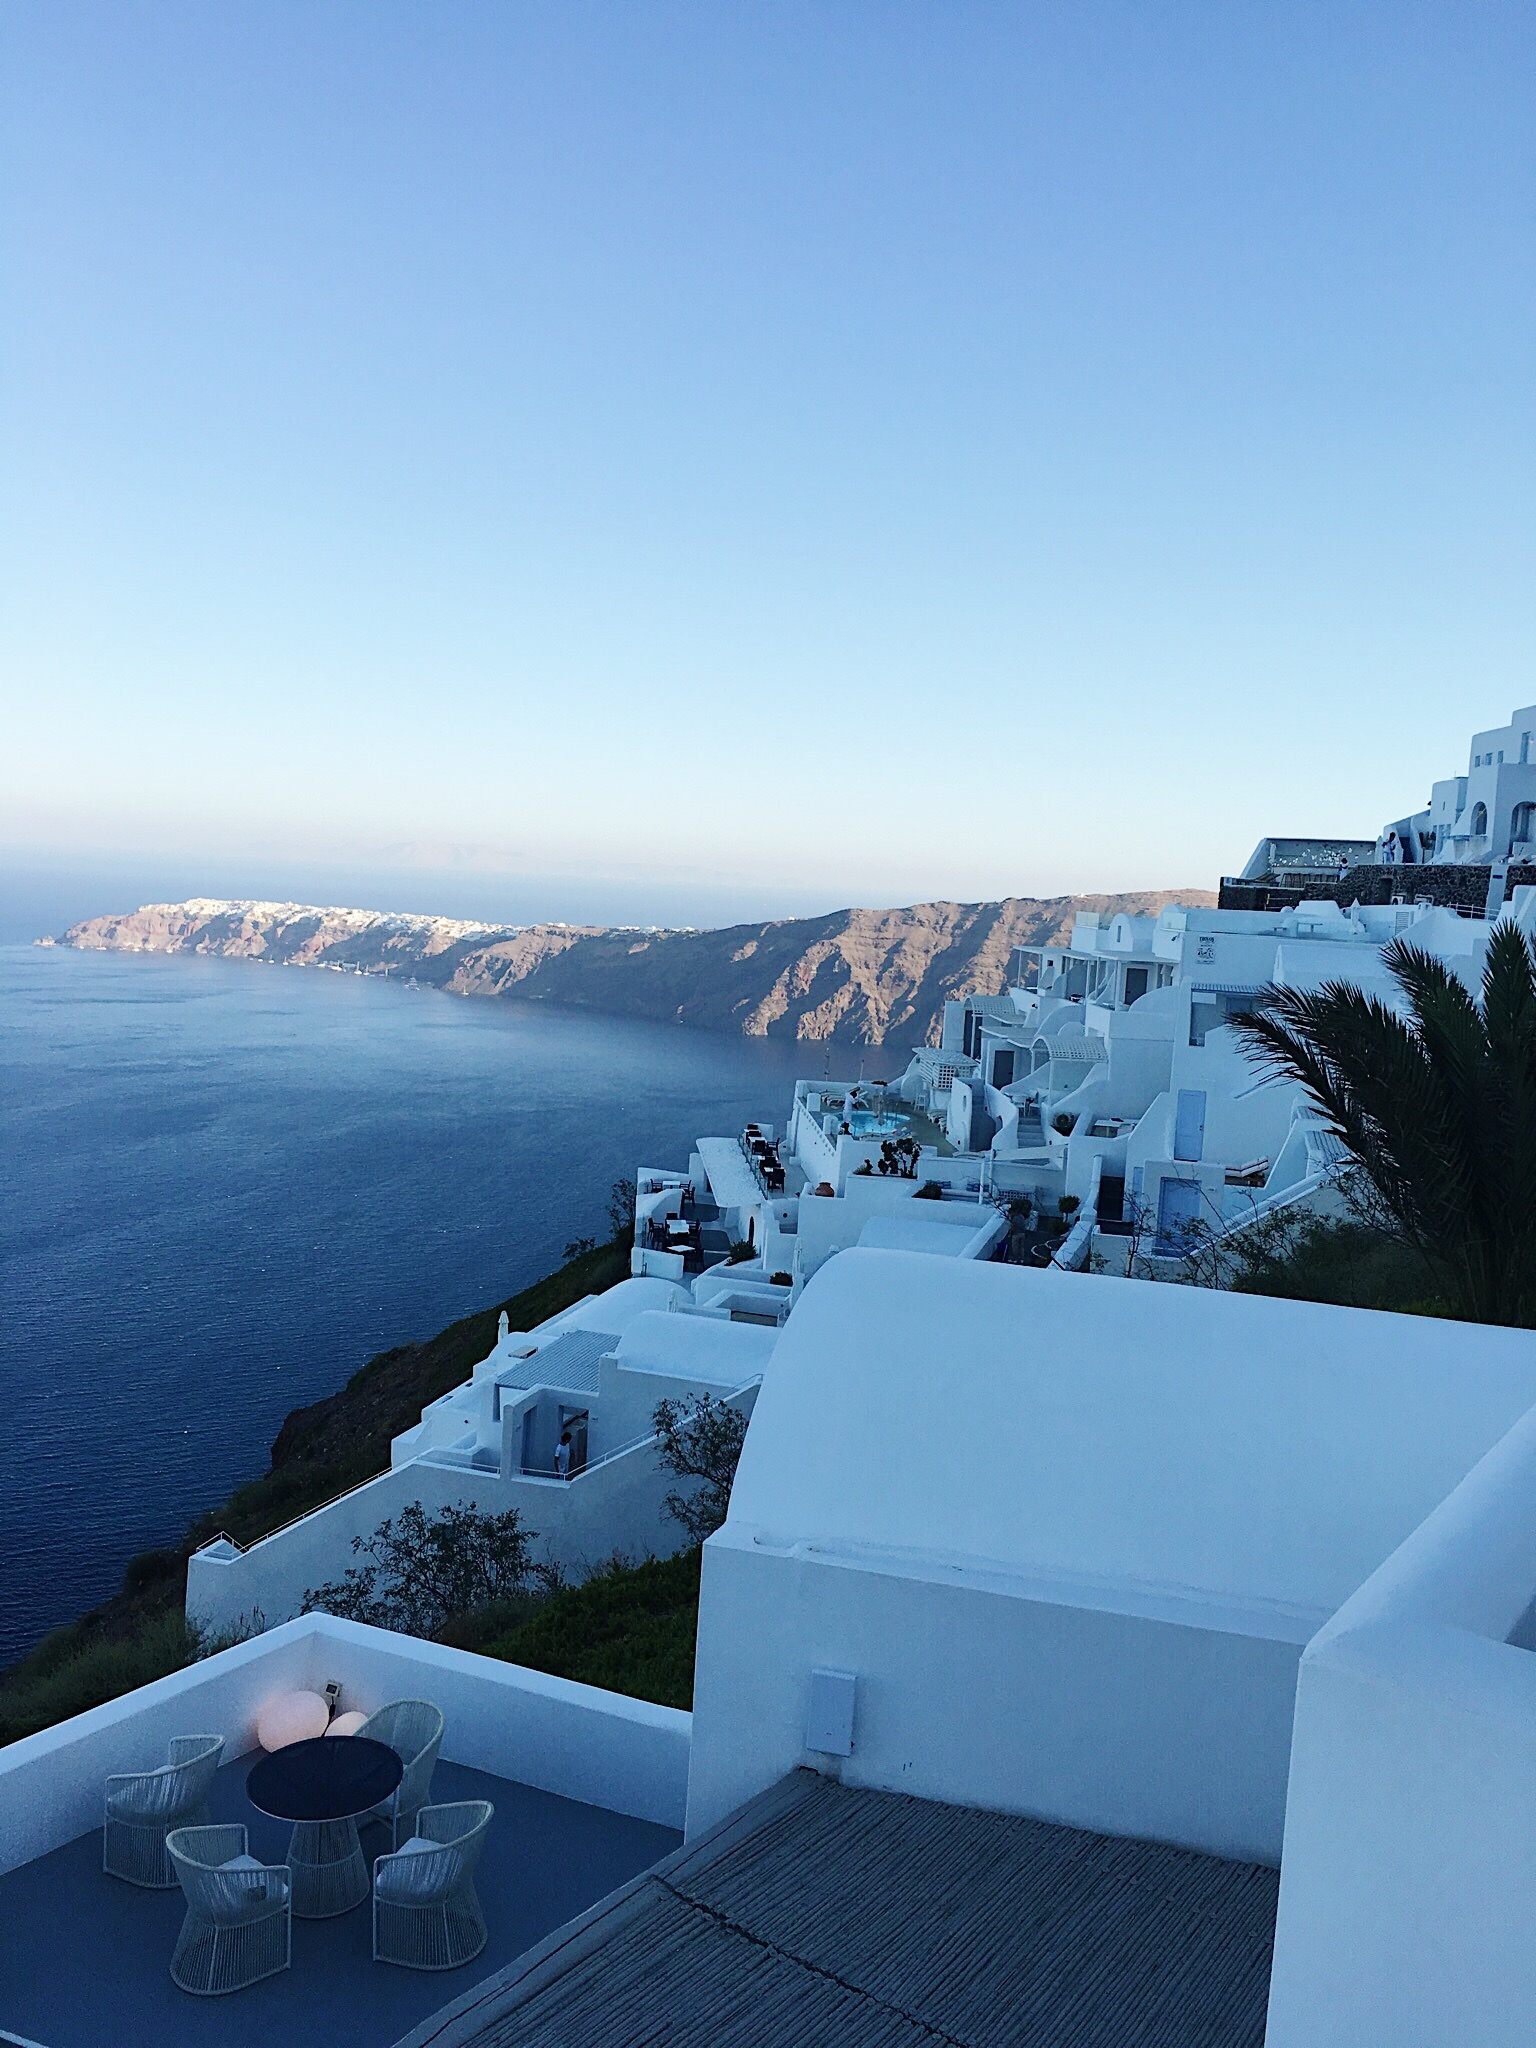 Early morning yoga while visiting Greece with Doug - An incredible experience!